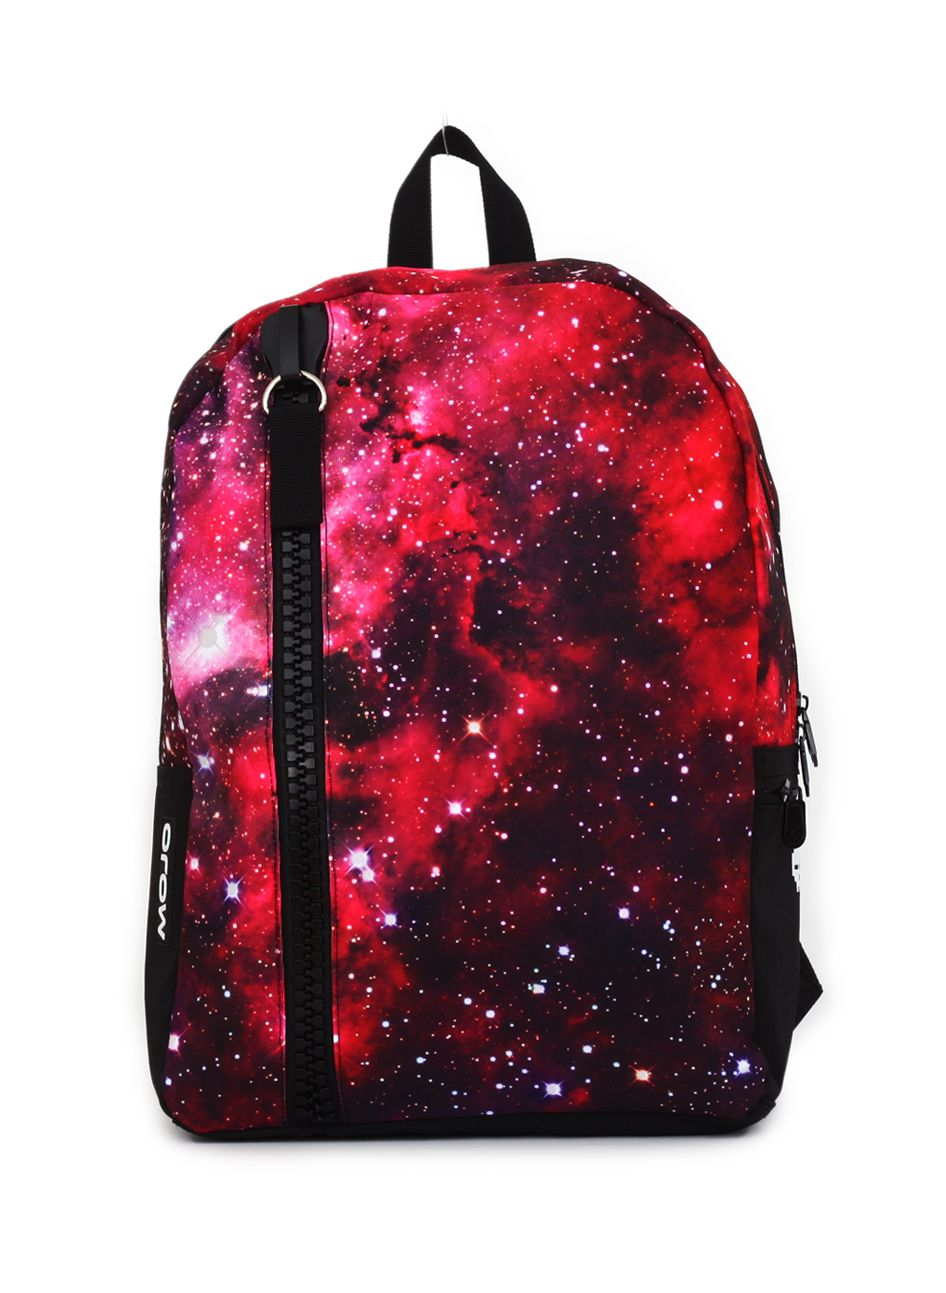 32e52435e064 Underground Outfits Feature: © Mojo Backpacks - Spaced Backpack ...